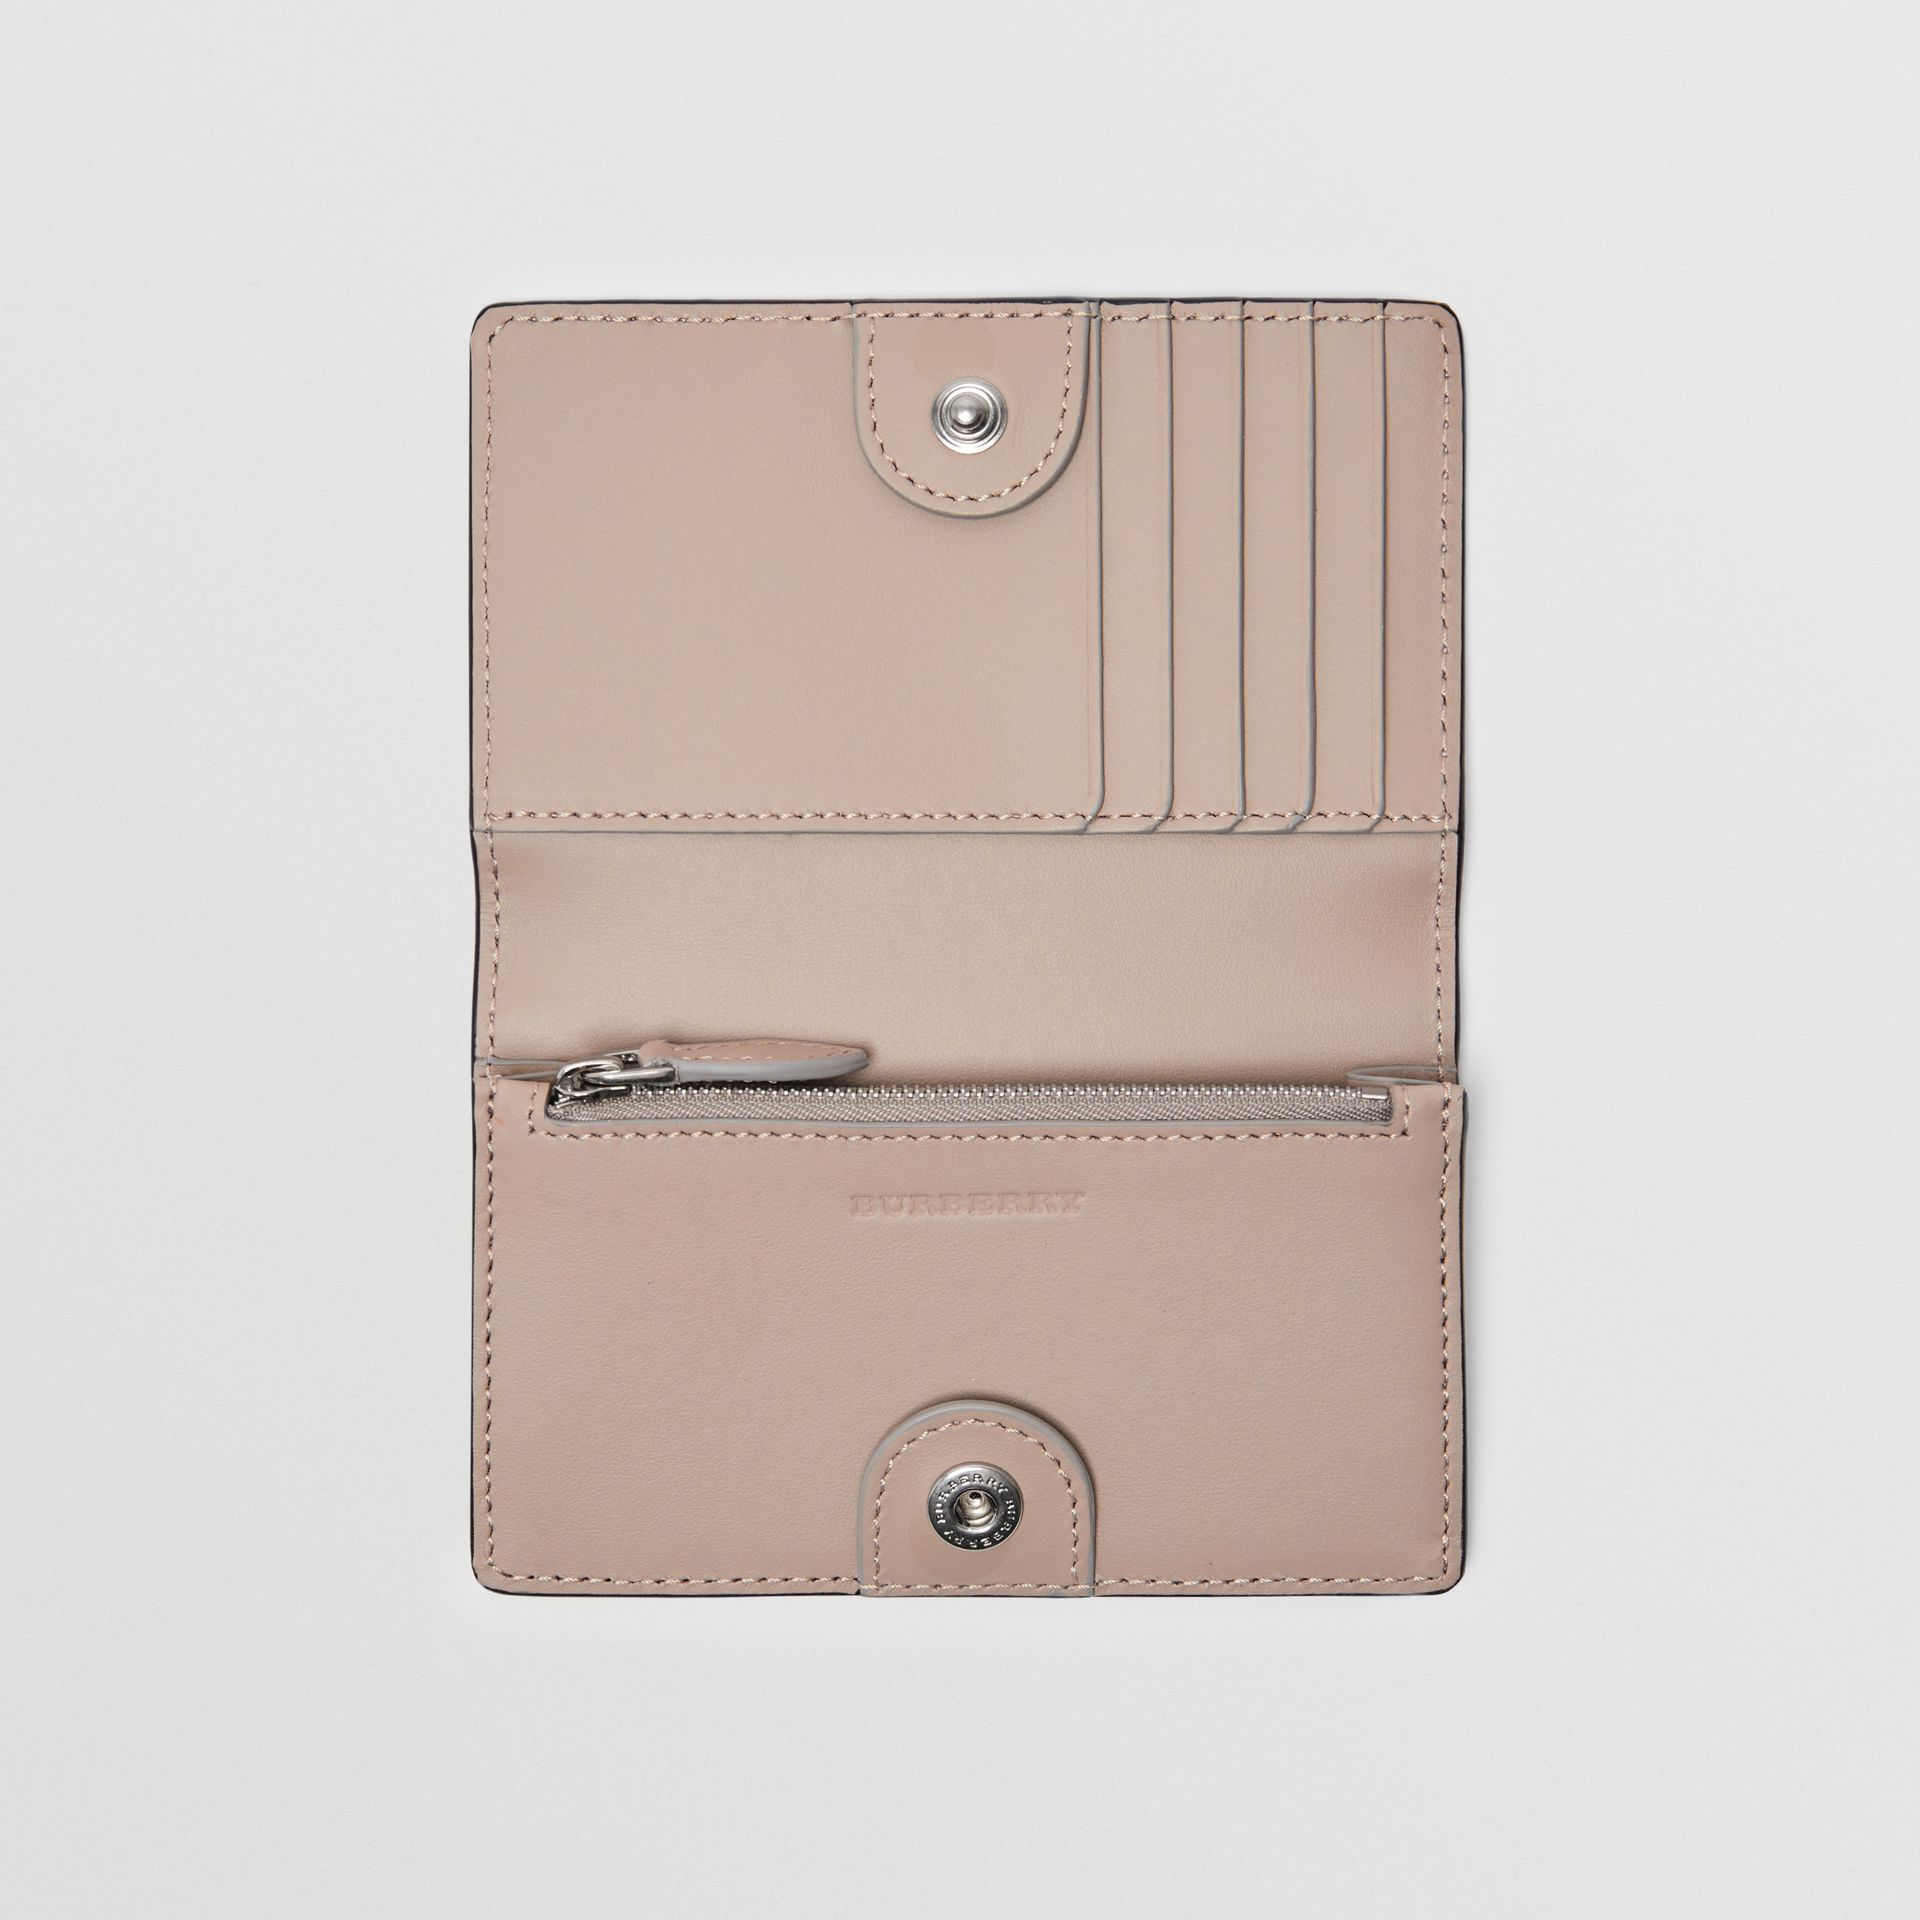 Small Embossed Crest Two-tone Leather Wallet in Chalk Pink - Women | Burberry Australia - gallery image 2